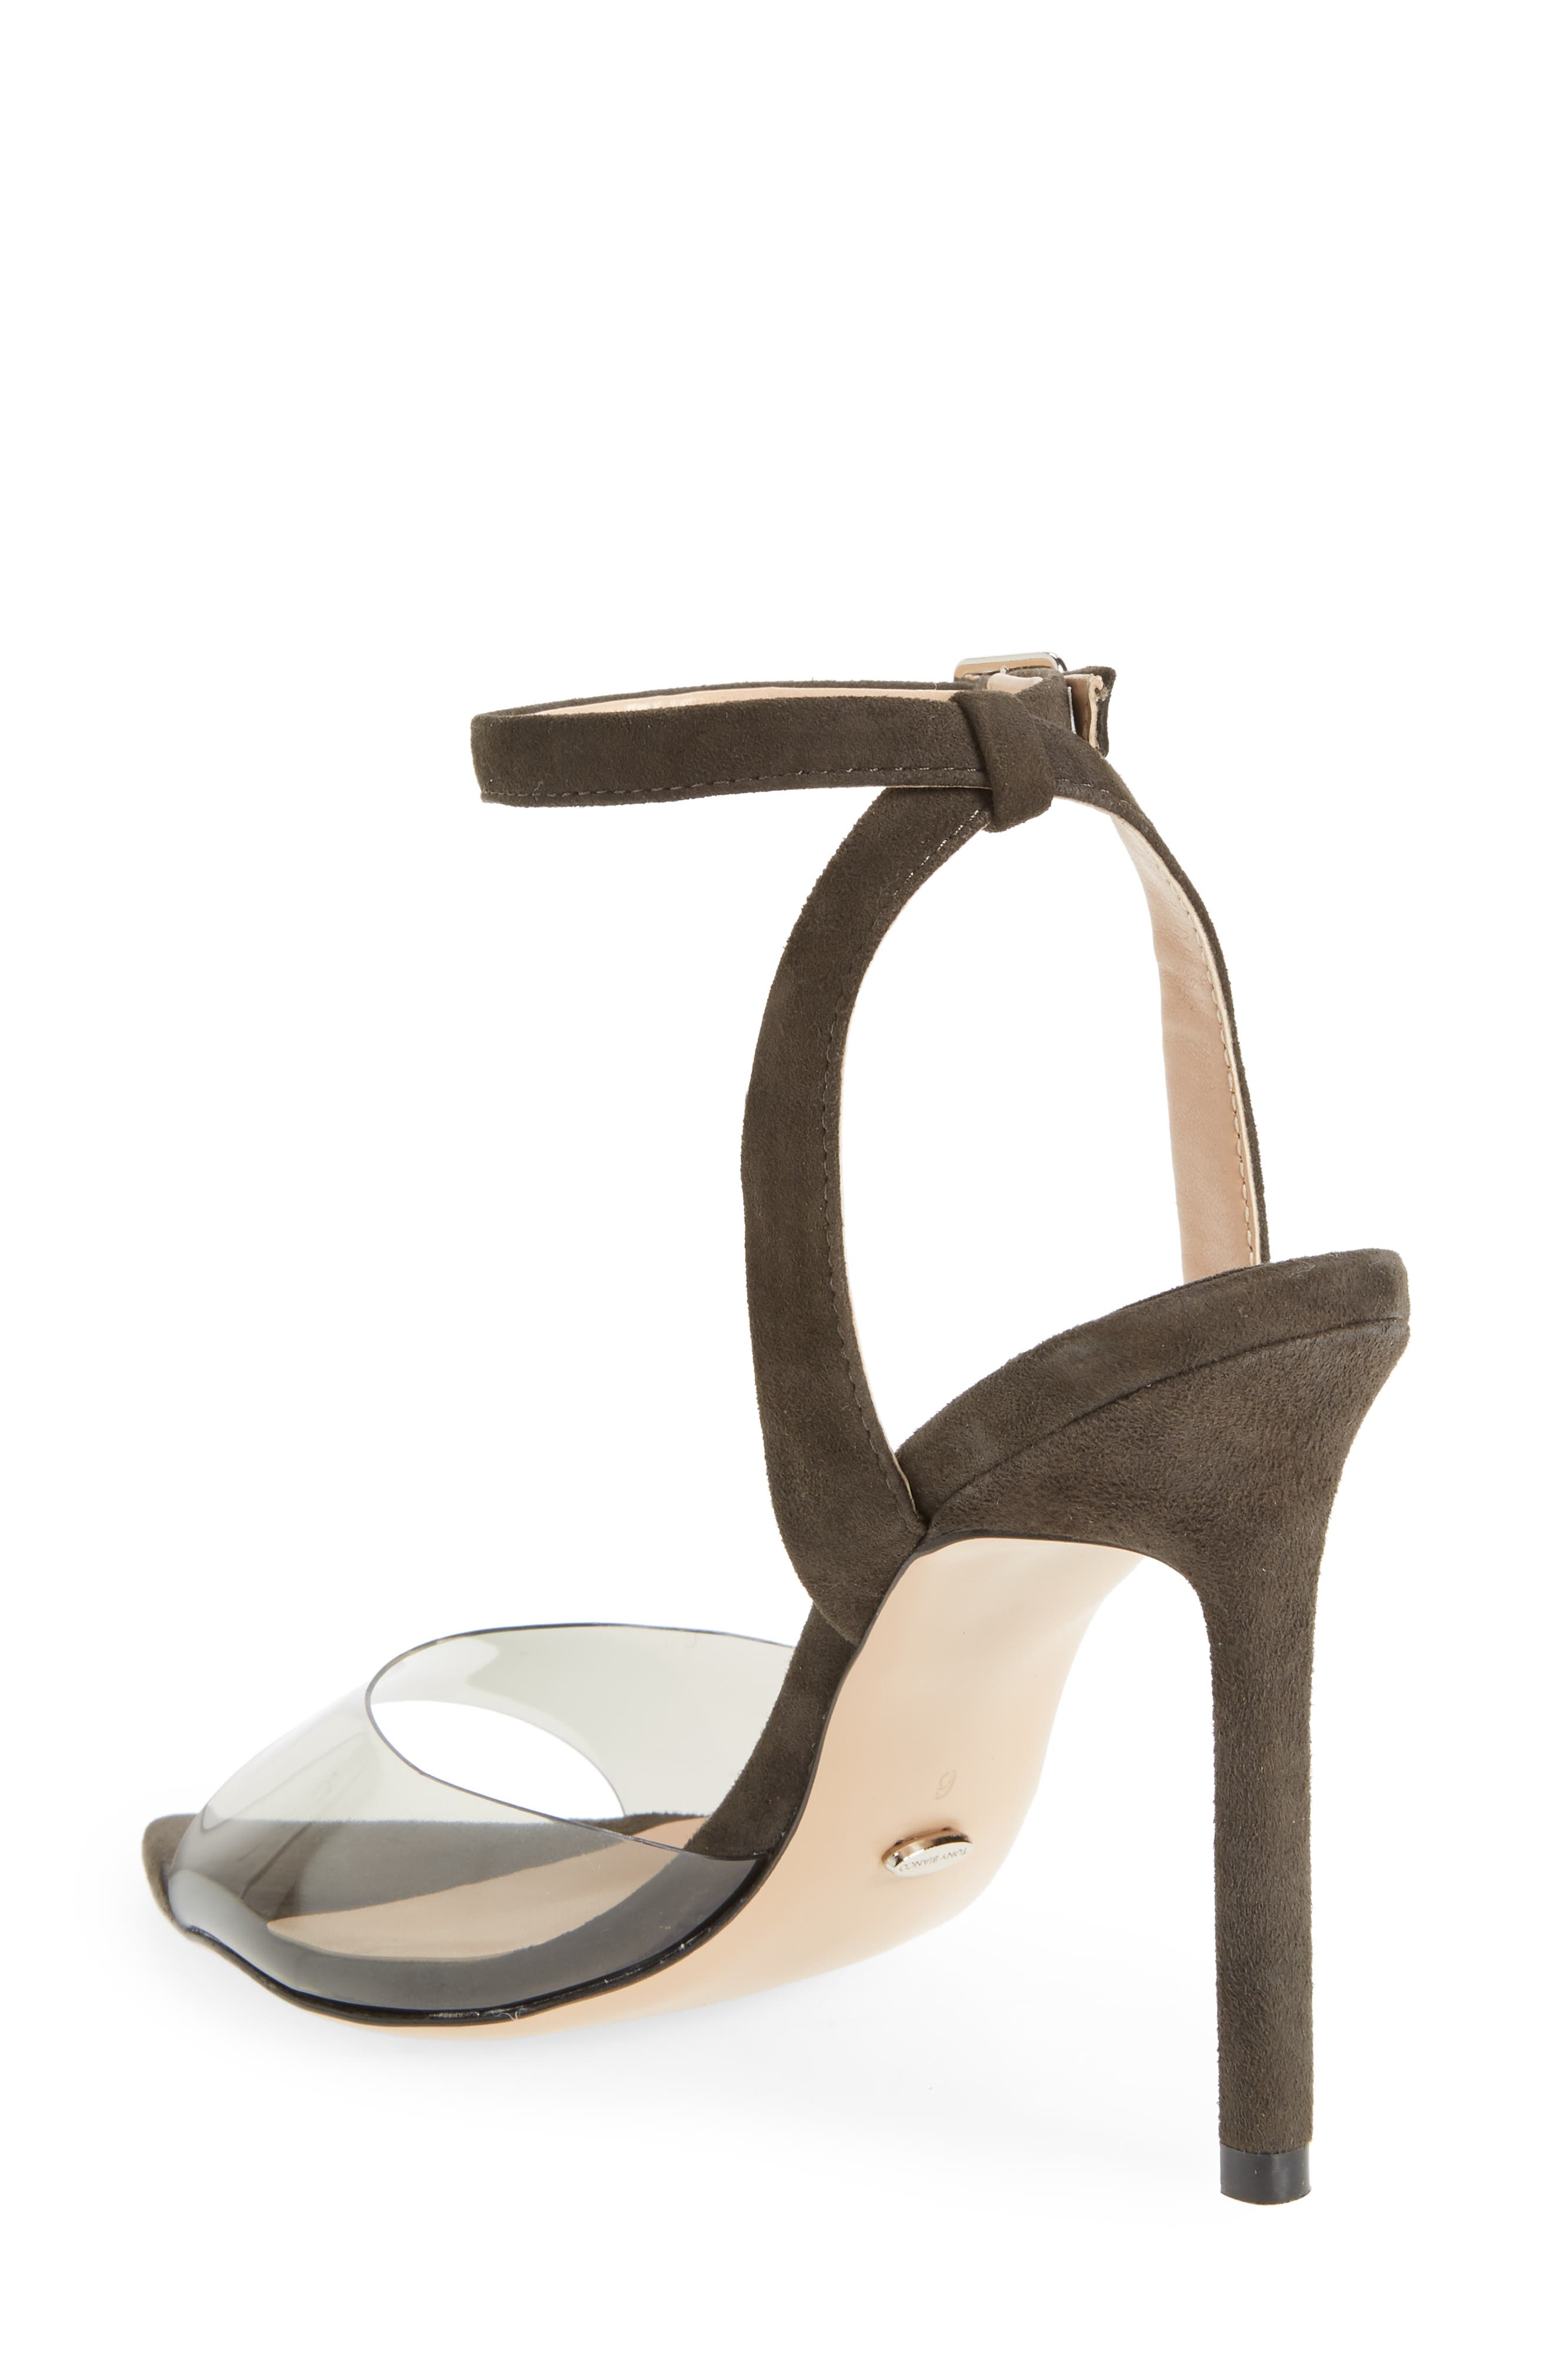 TONY BIANCO,                             Maxime Sandal,                             Alternate thumbnail 2, color,                             SMOKE / LICORICE SUEDE